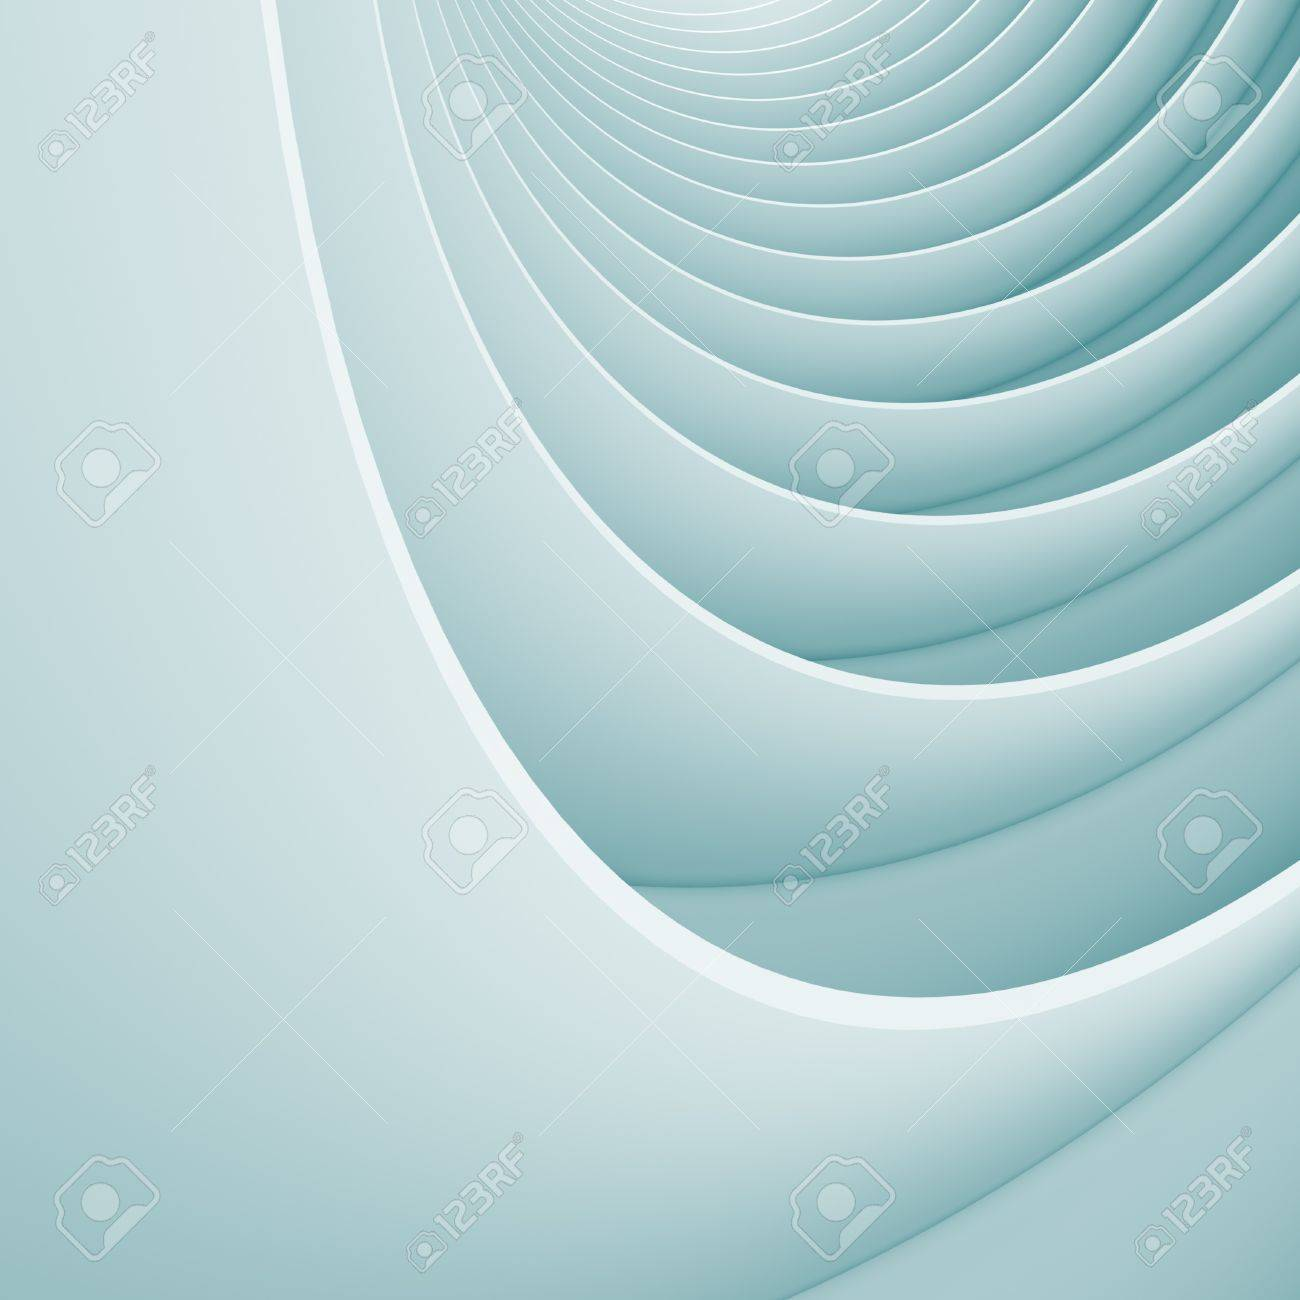 Abstract Building Background Stock Photo - 9900106